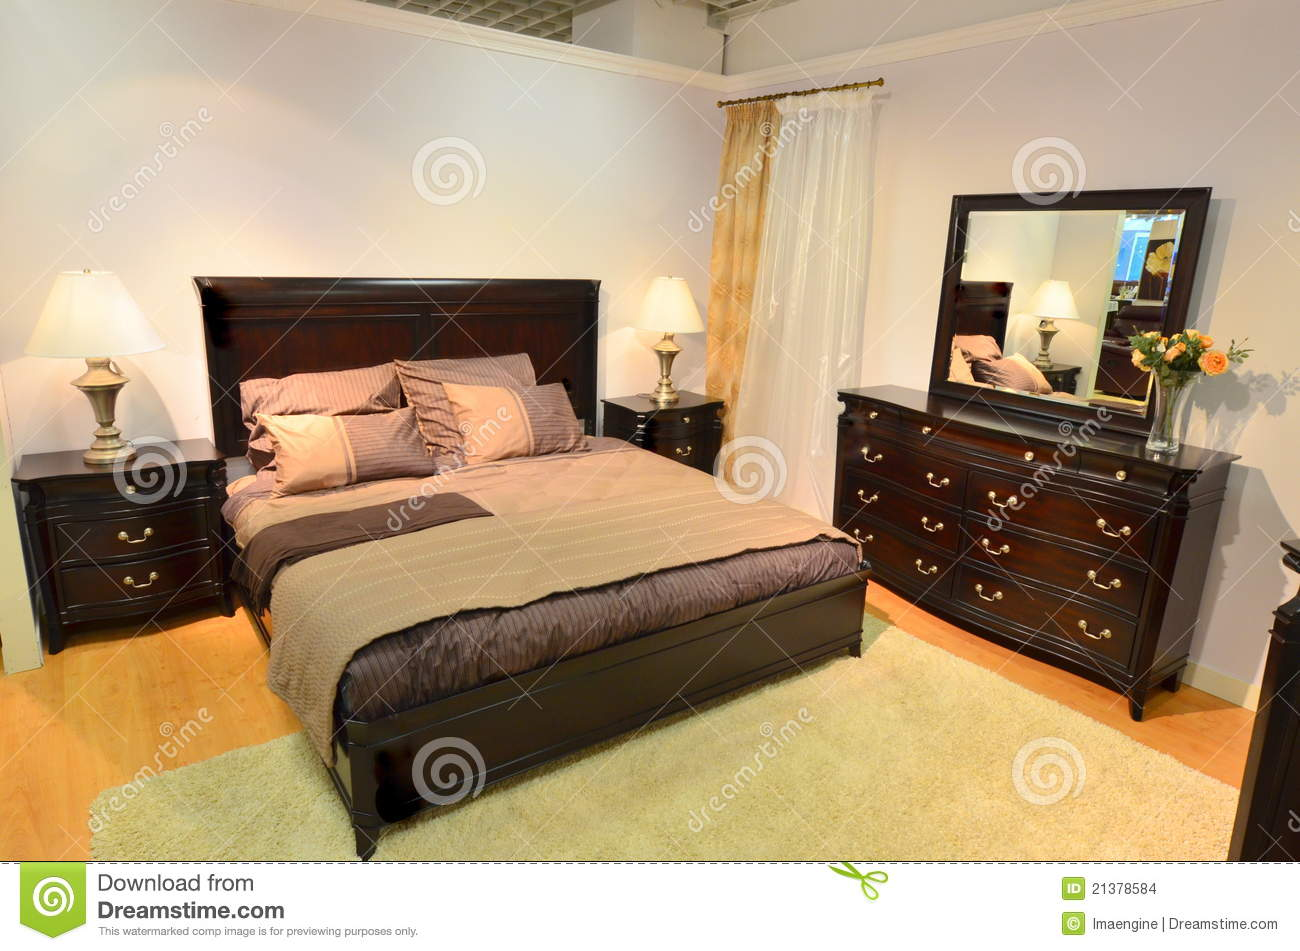 Classic Bedroom Wooden Furniture Stock Images - Image: 21378584